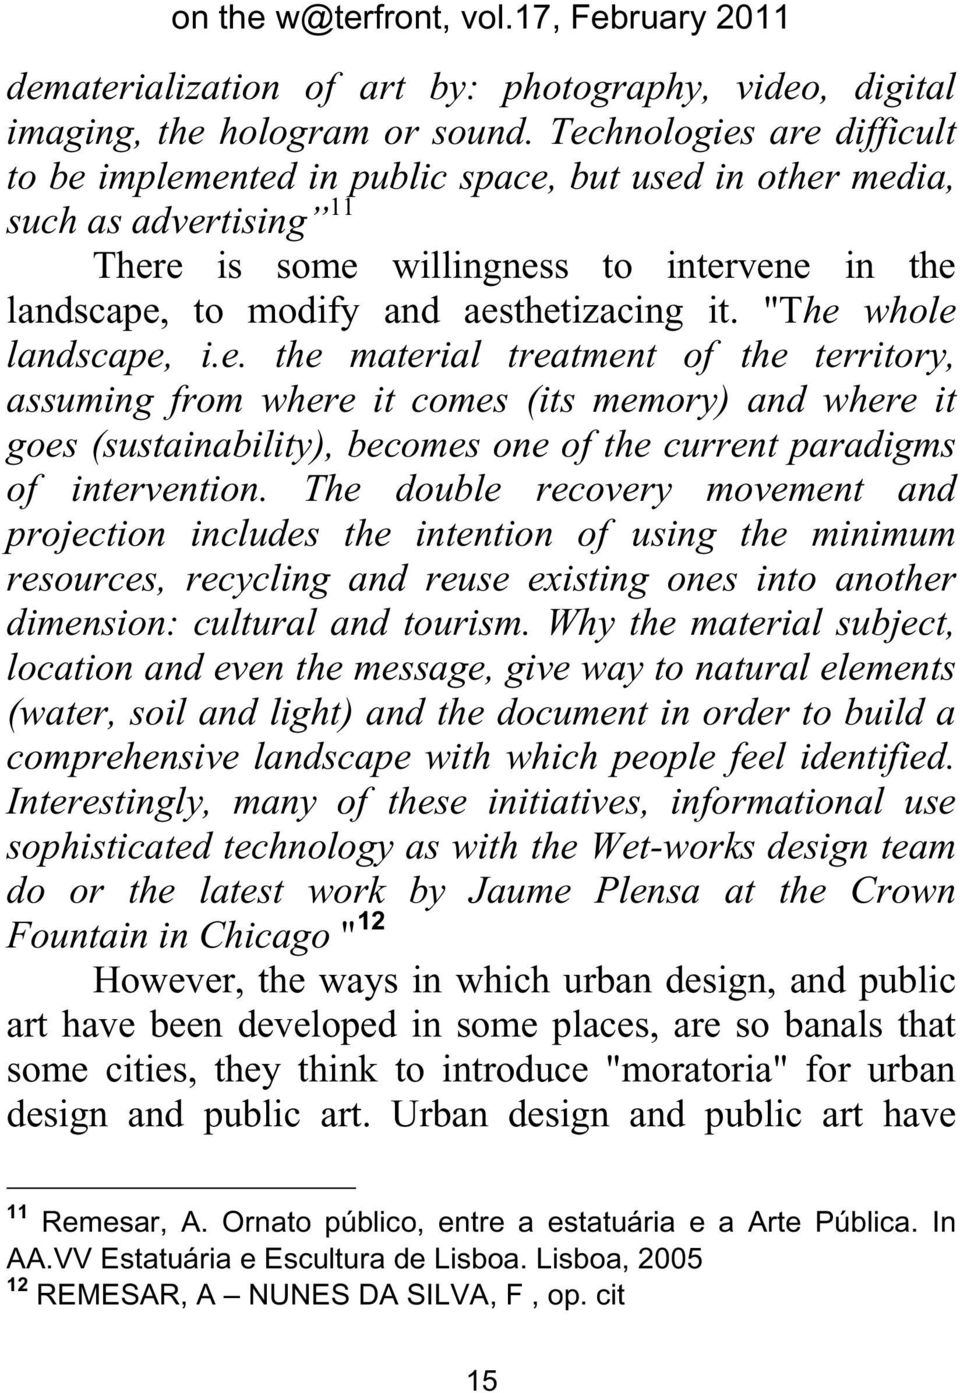 """The whole landscape, i.e. the material treatment of the territory, assuming from where it comes (its memory) and where it goes (sustainability), becomes one of the current paradigms of intervention."